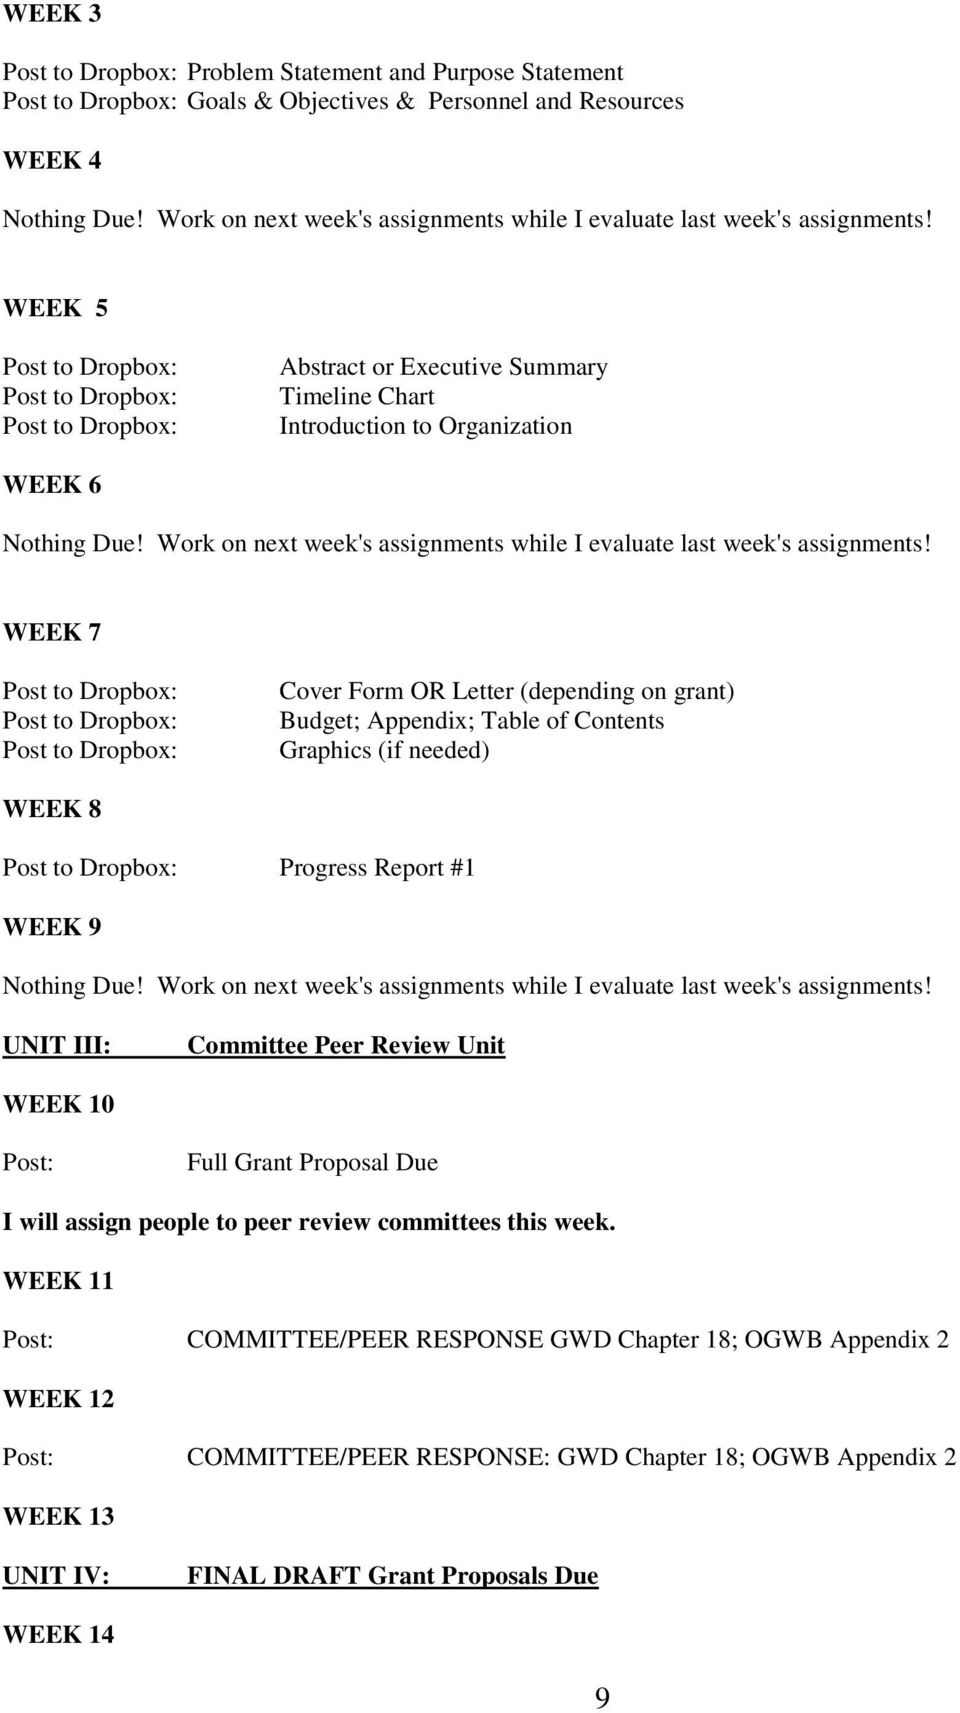 WEEK 7 Cover Form OR Letter (depending on grant) Budget; Appendix; Table of Contents Graphics (if needed) WEEK 8 Progress Report #1 WEEK 9 Nothing Due!